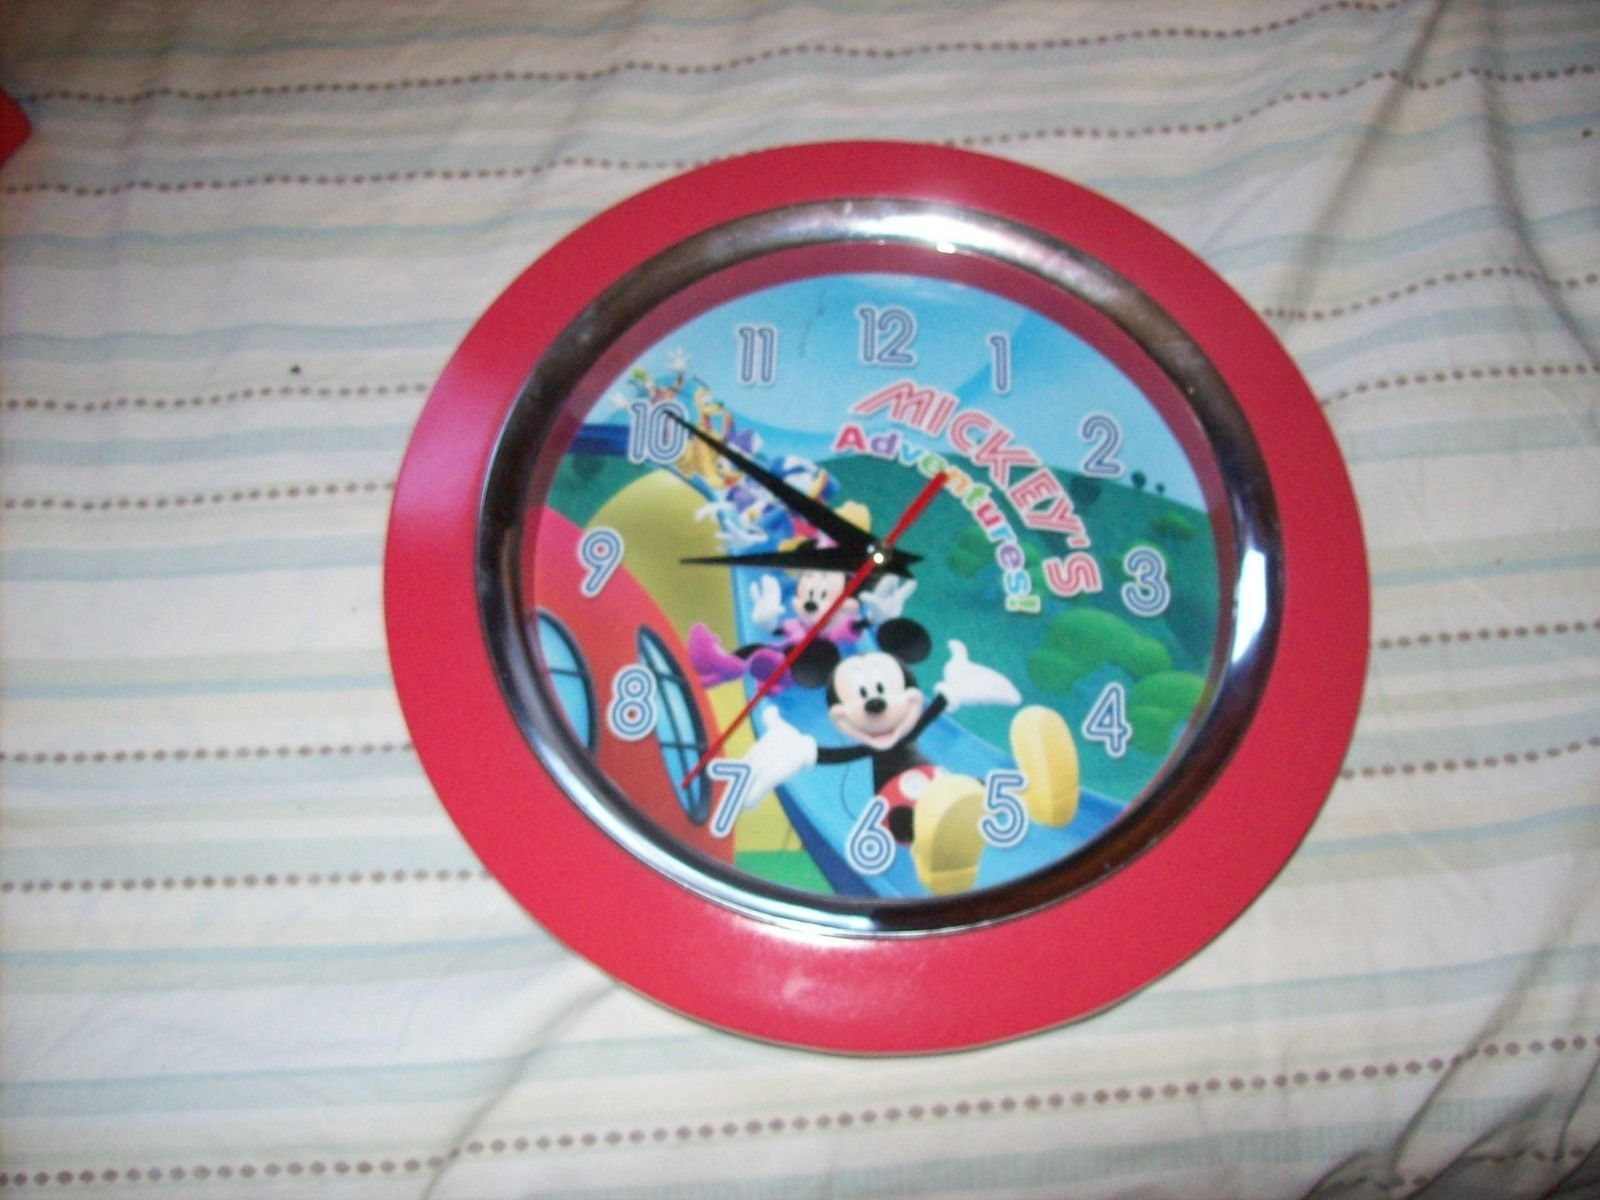 "Disney Mickey Mouse 9.5"" Round Quartz Mickey's Adventures Red Wall Clock"